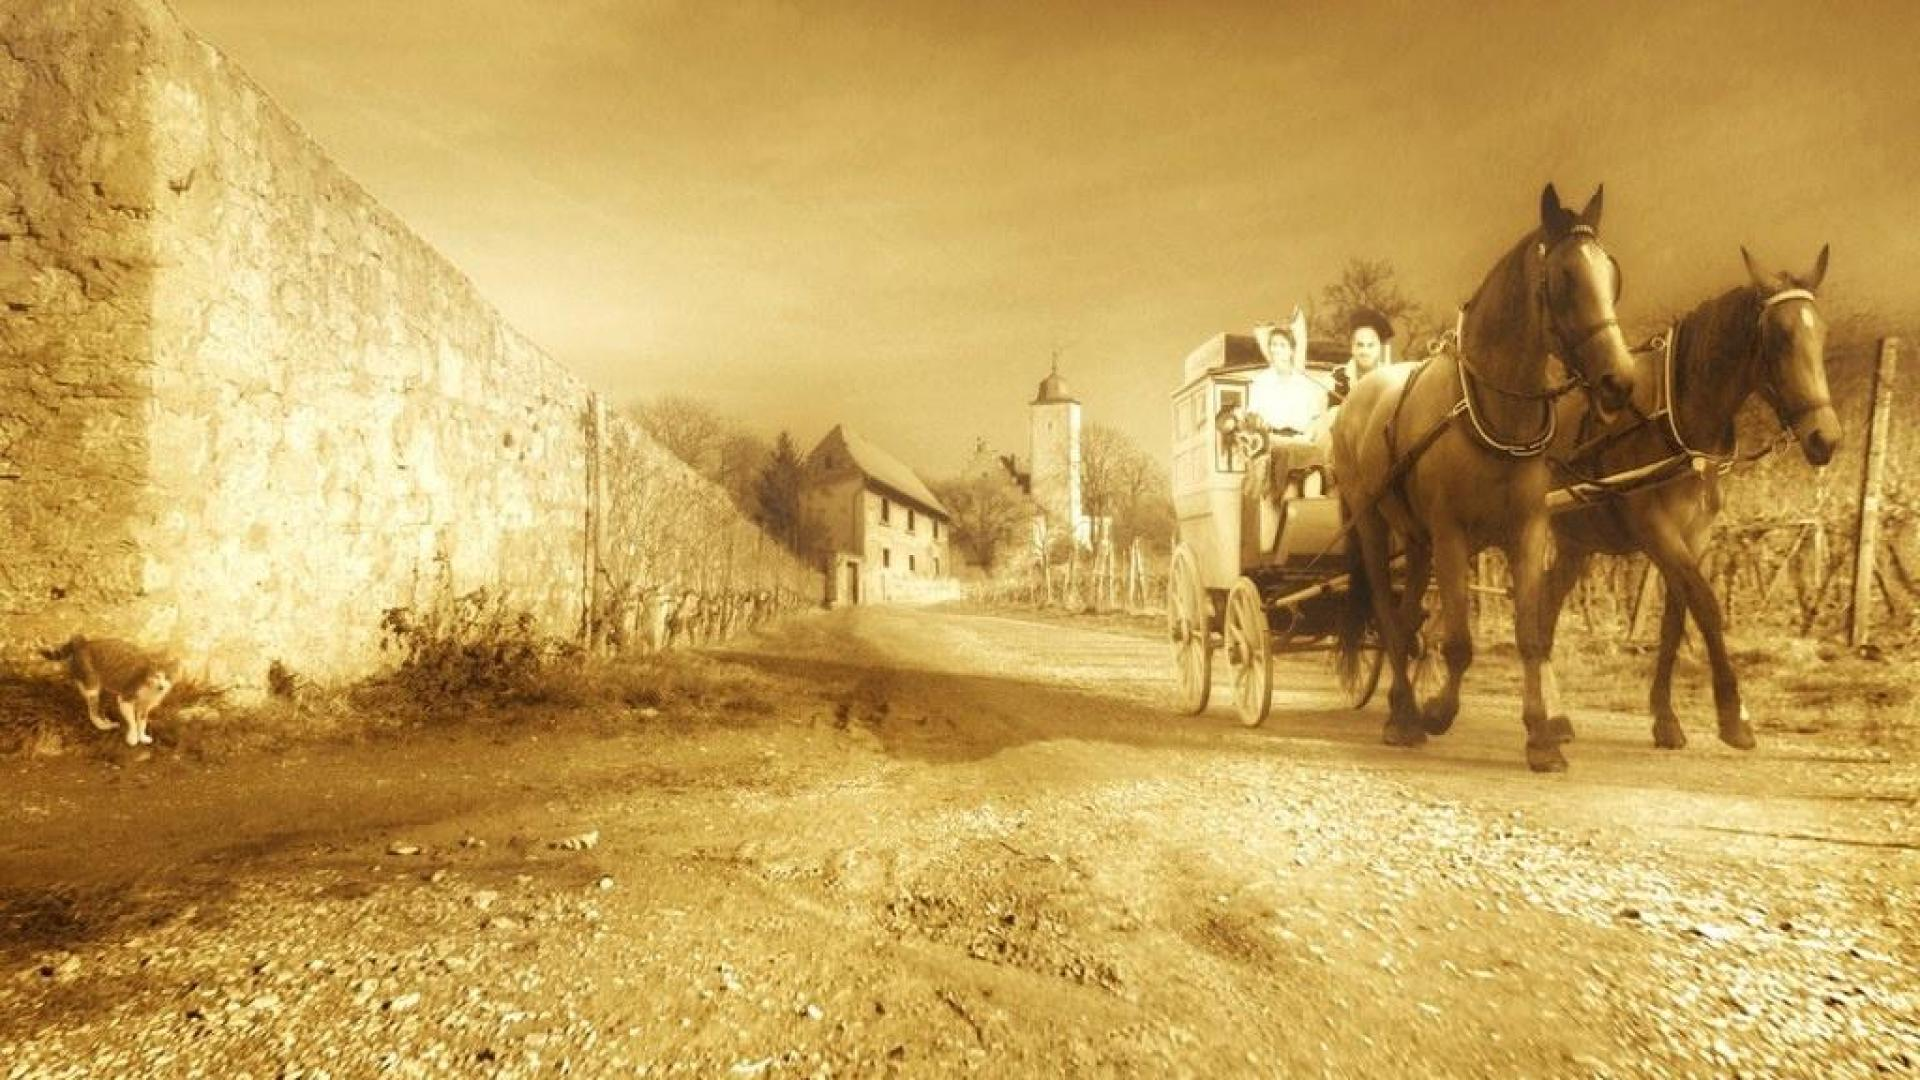 old west wallpaper free - photo #35